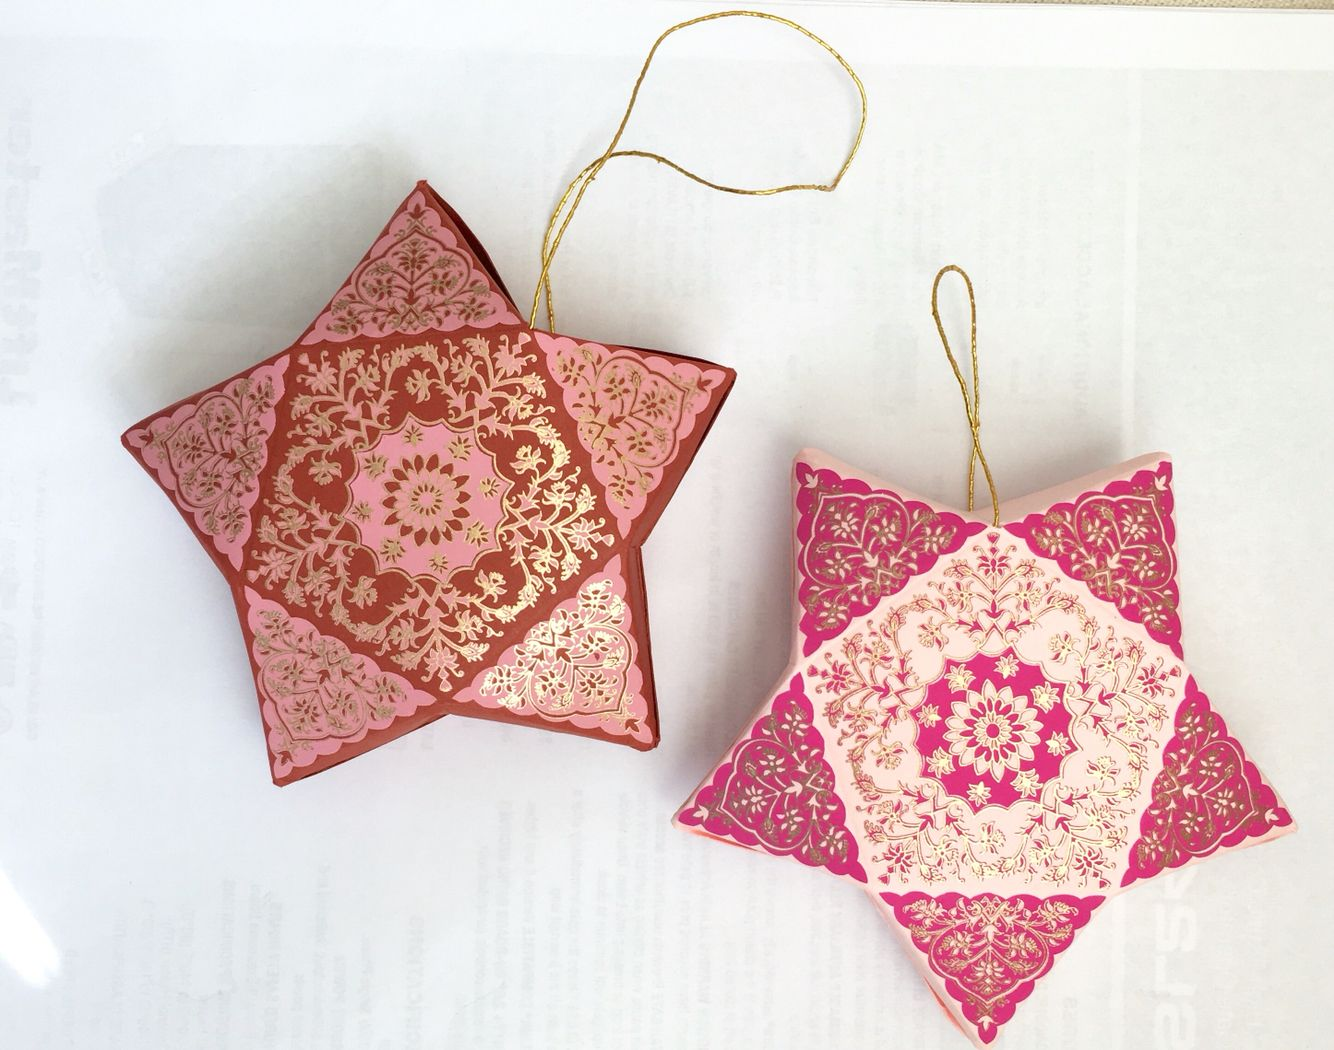 Star Boxes perfect for Ramadan and Eid parties! Can be filled with treats, money, favors, etc! Gold string comes attached. Discount for bulk orders!   #eiddecoration #ramadanmubarak #eidmubarak #ramadankareem #eidgifts #ramadanparty #iftarparty #indianwedding #moneyholder #hangingstars #stardecoration